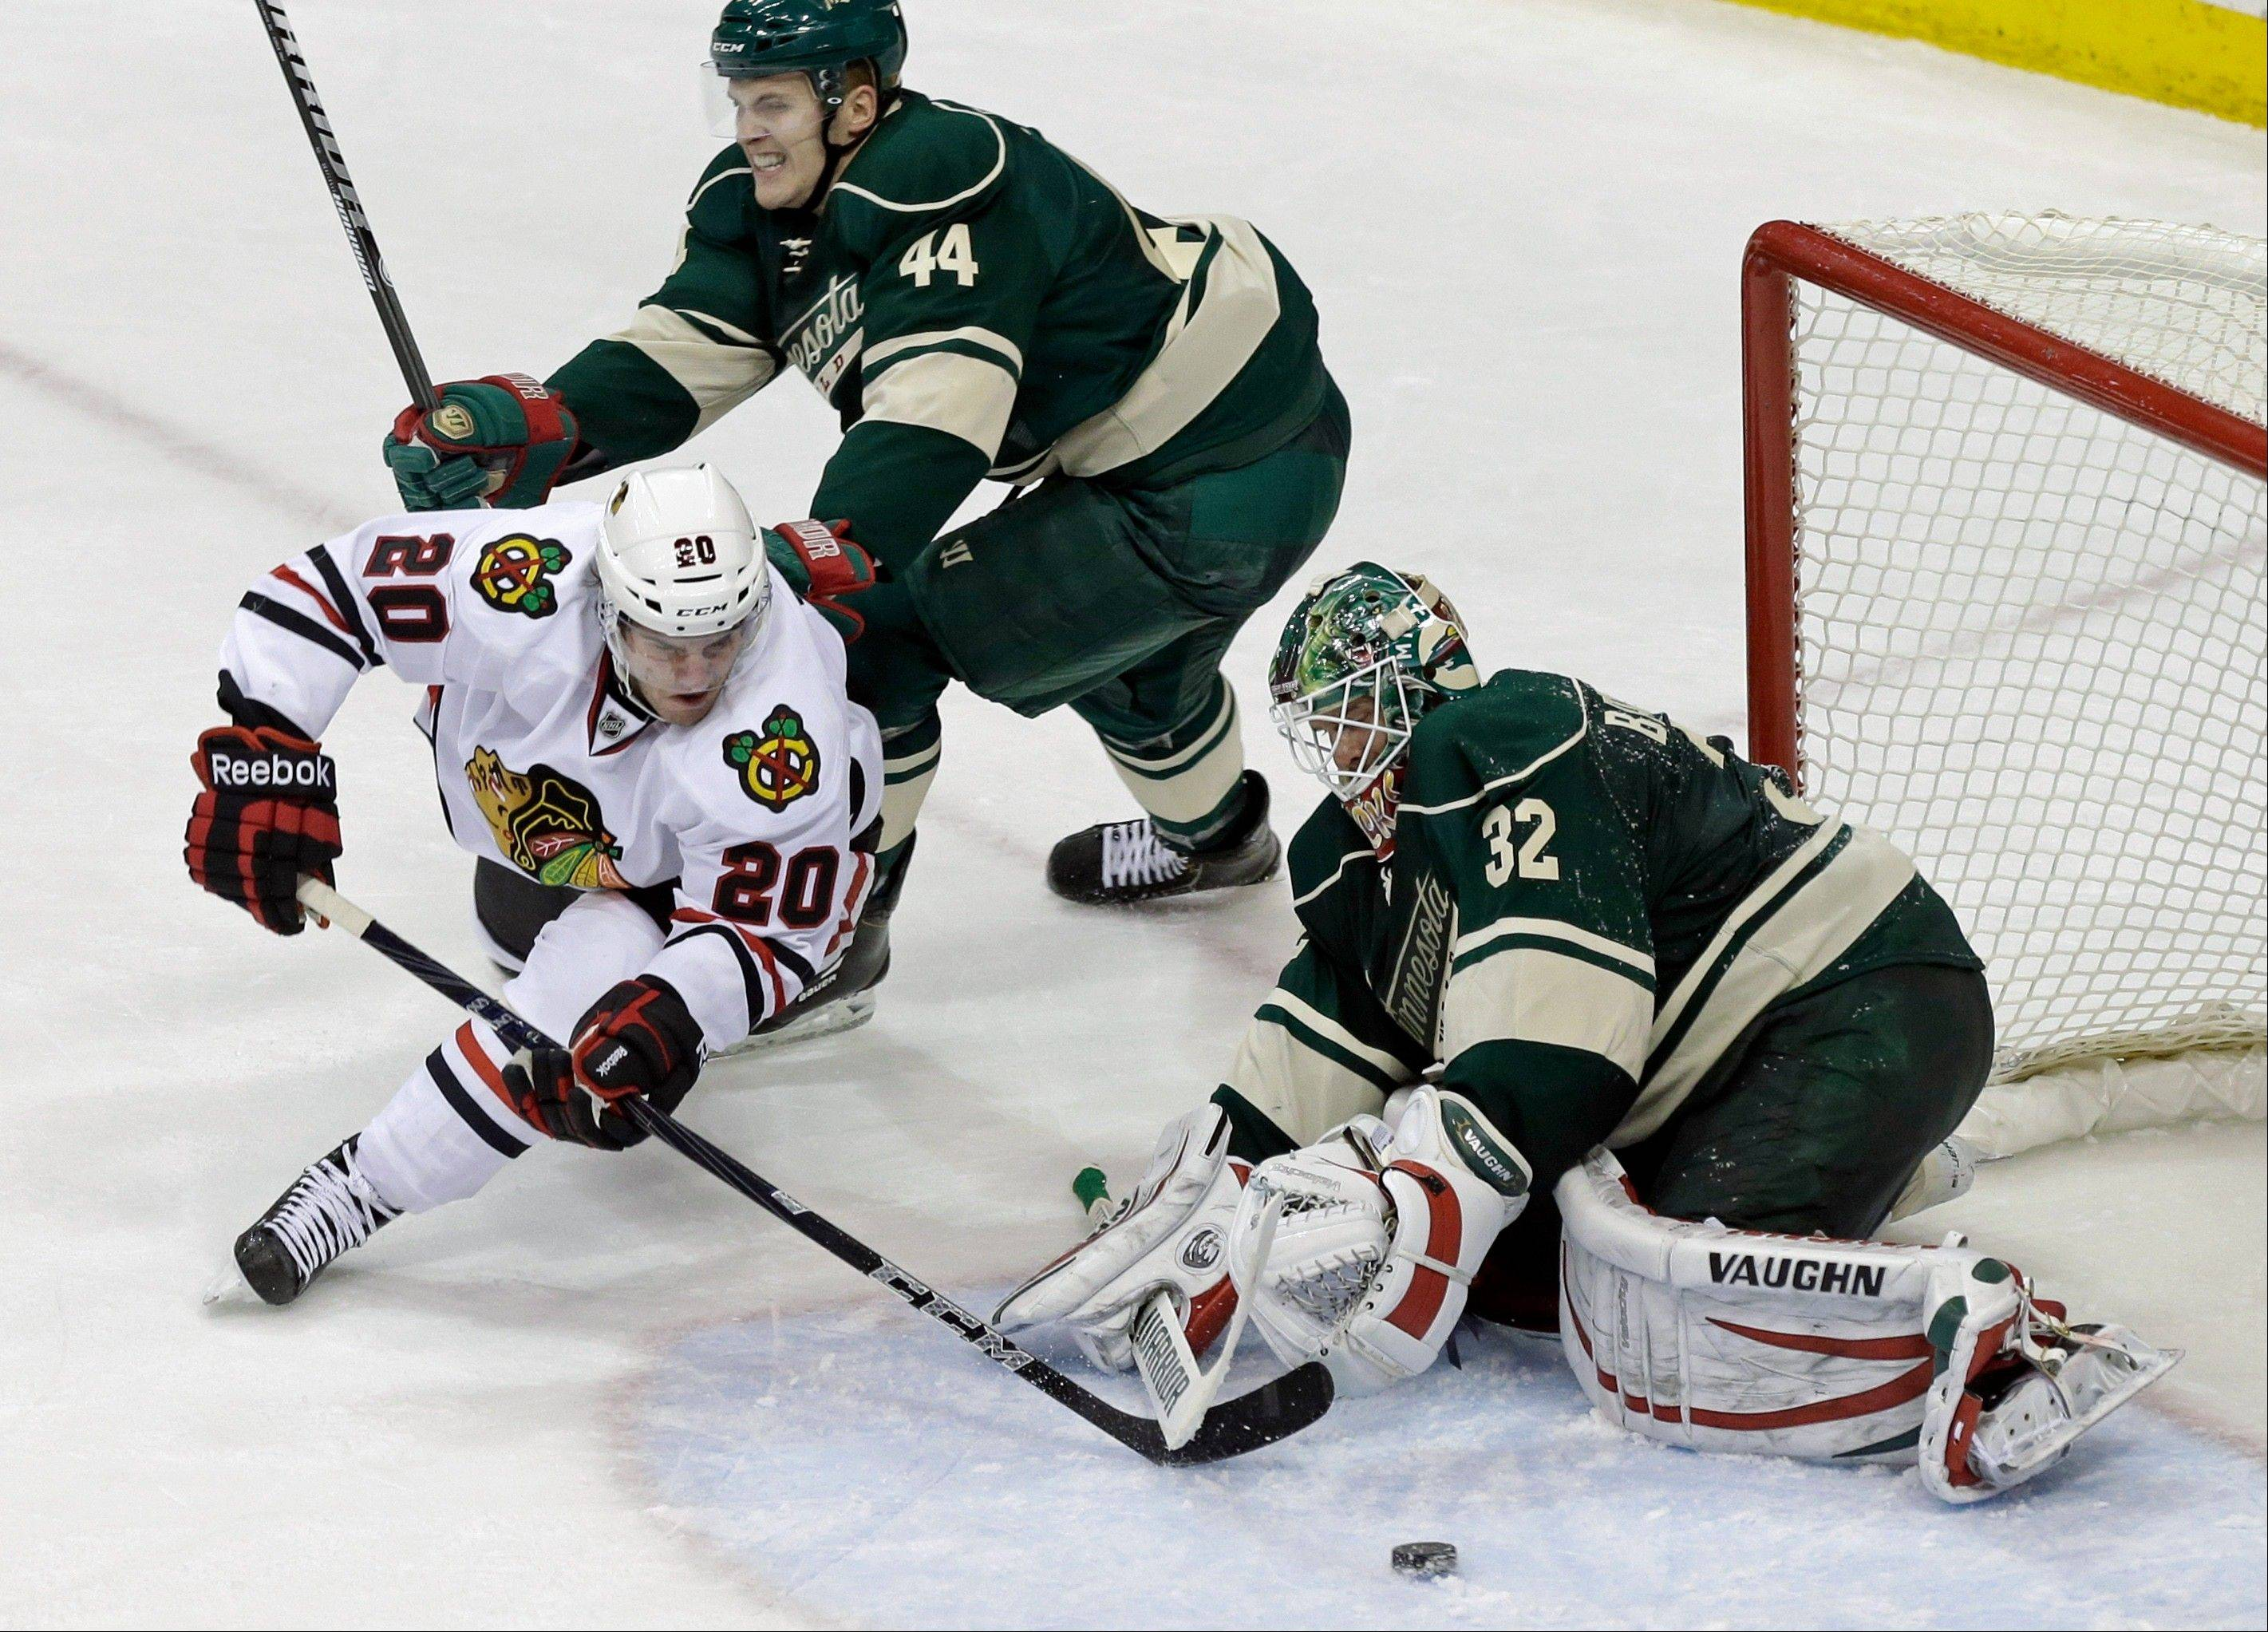 A shot attempt by Chicago Blackhawks' Brandon Saad, left, goes wide of Minnesota Wild goalie Niklas Backstrom of Finland in the third period of an NHL hockey game Tuesday, April 9, 2013 in St. Paul. The Blackhawks won 1-0. Defending is Wild's Justin Falk, top.